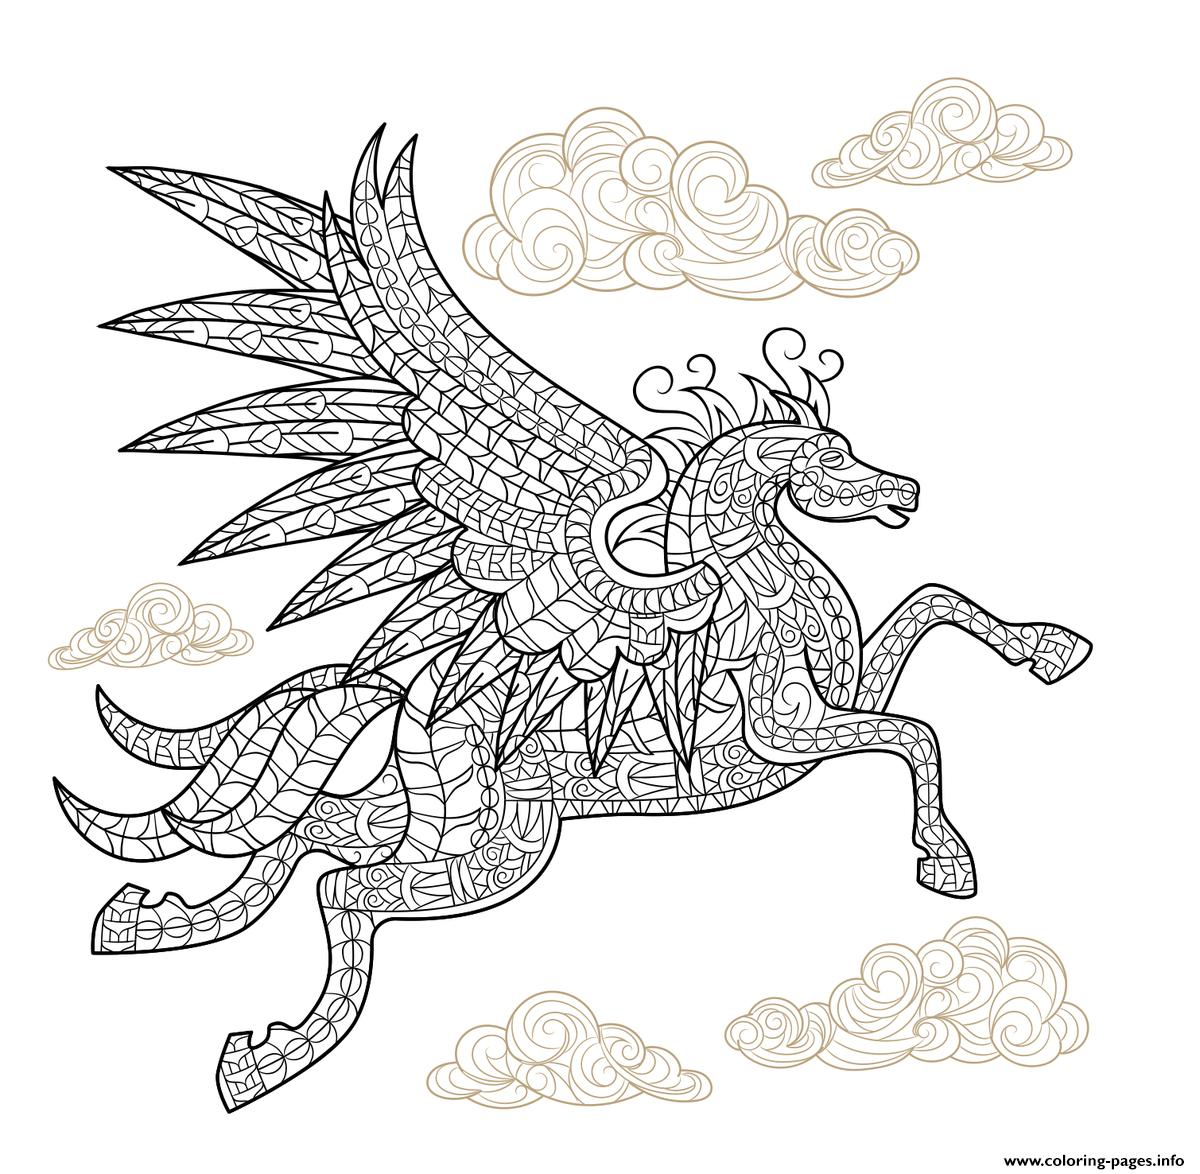 Pegasus Winged Horse Hard Advanced Adult Animal Coloring